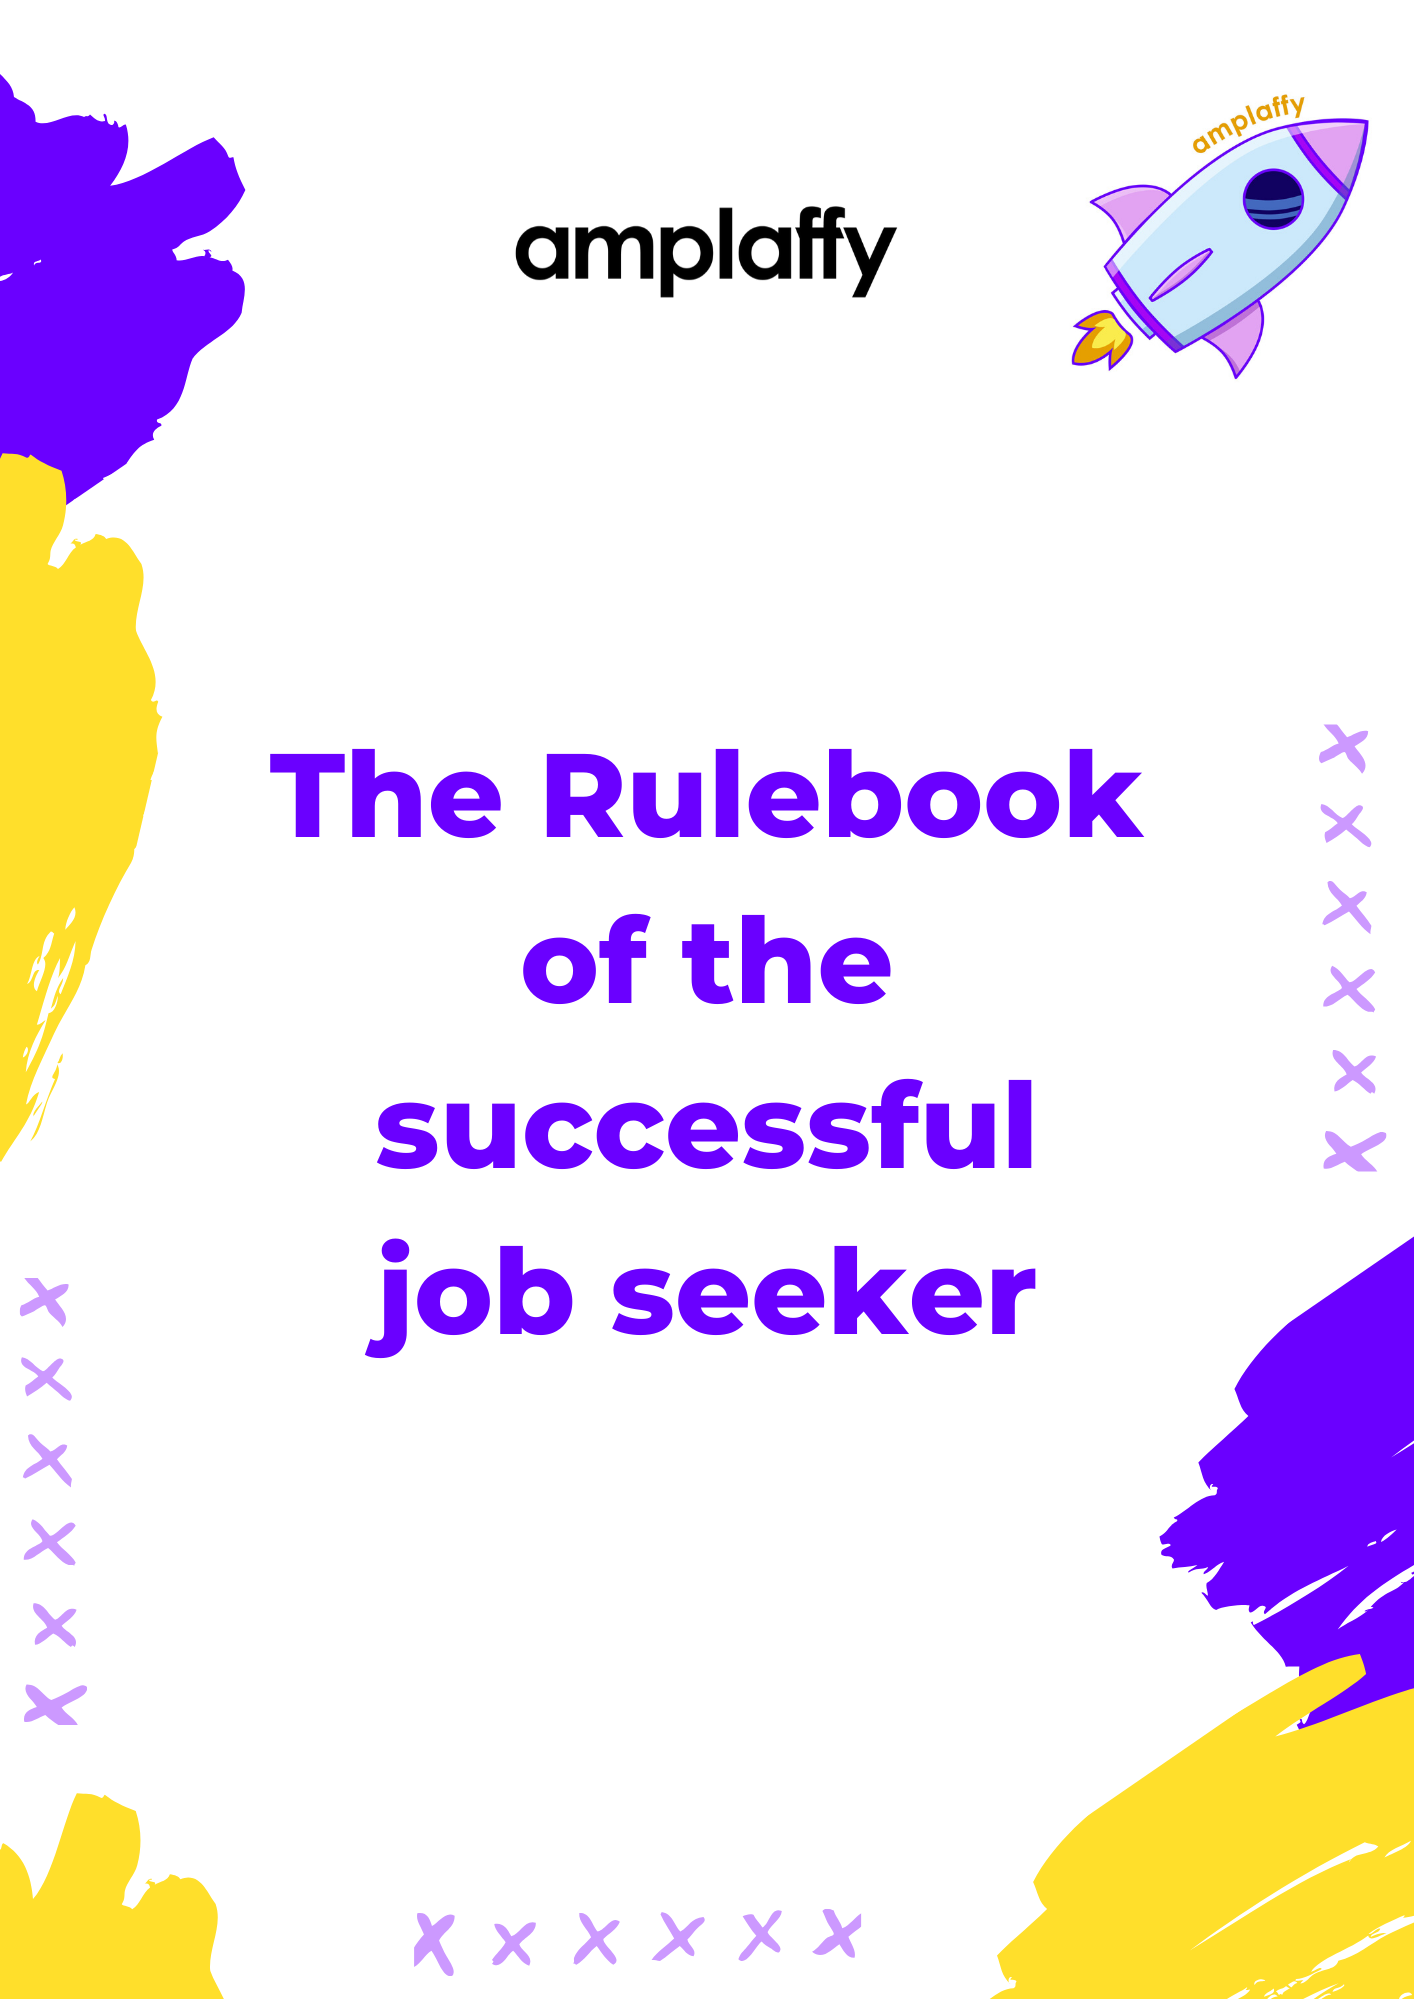 Get the Rulebook here.